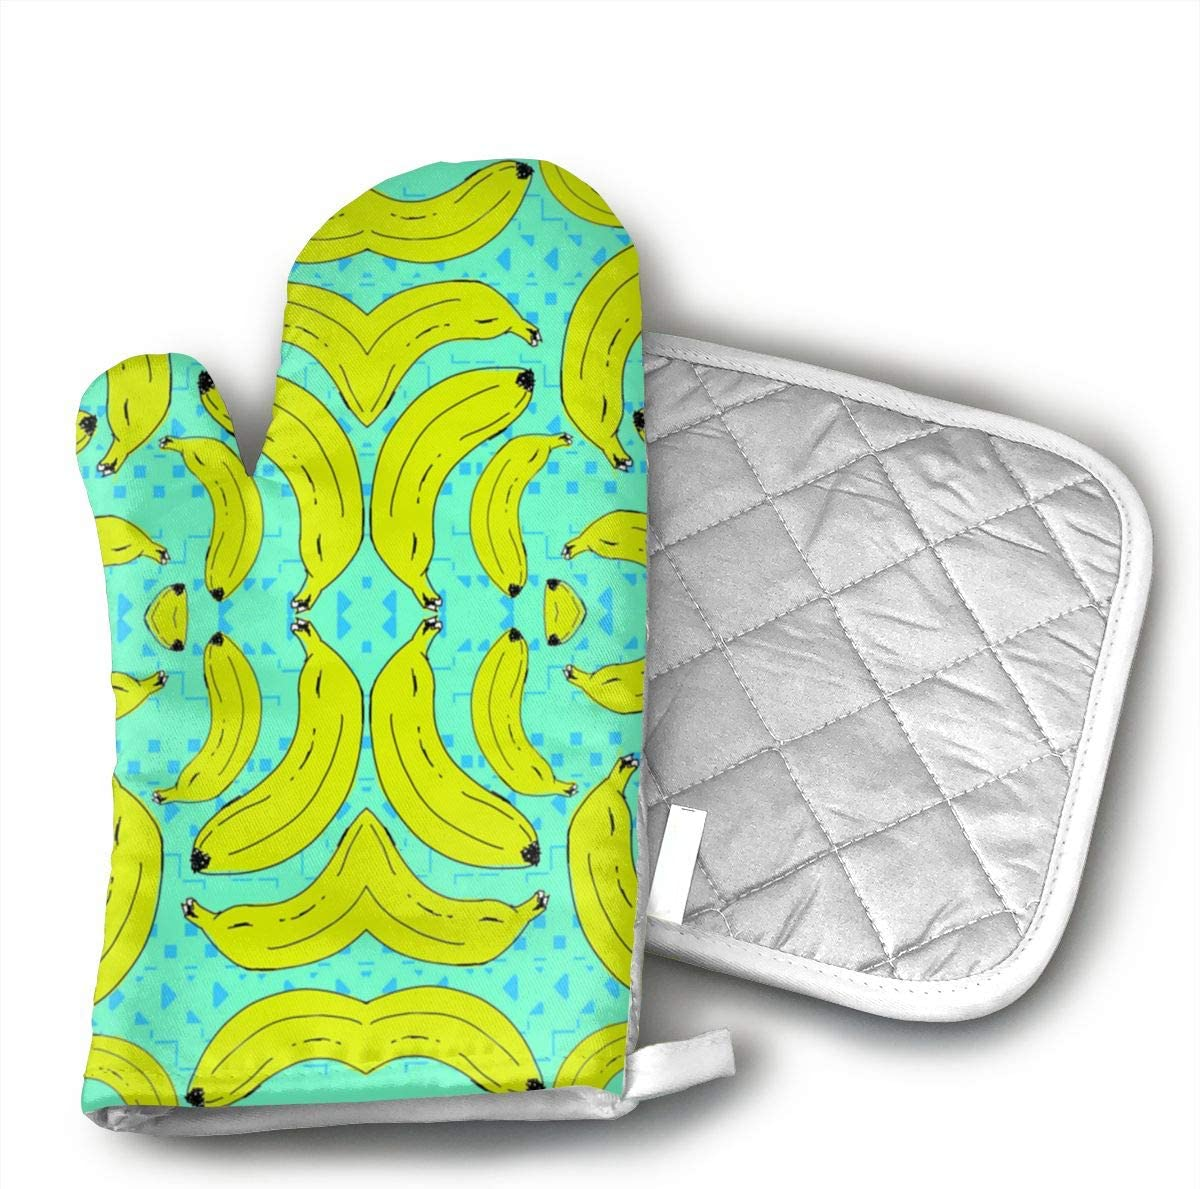 Klasl5 Silly Nana Heat Resistant Kitchen Oven Mitt with Non-Slip Printed,for BBQ Cooking Baking, Grilling, Barbecue,Microwave, Machine Washable.